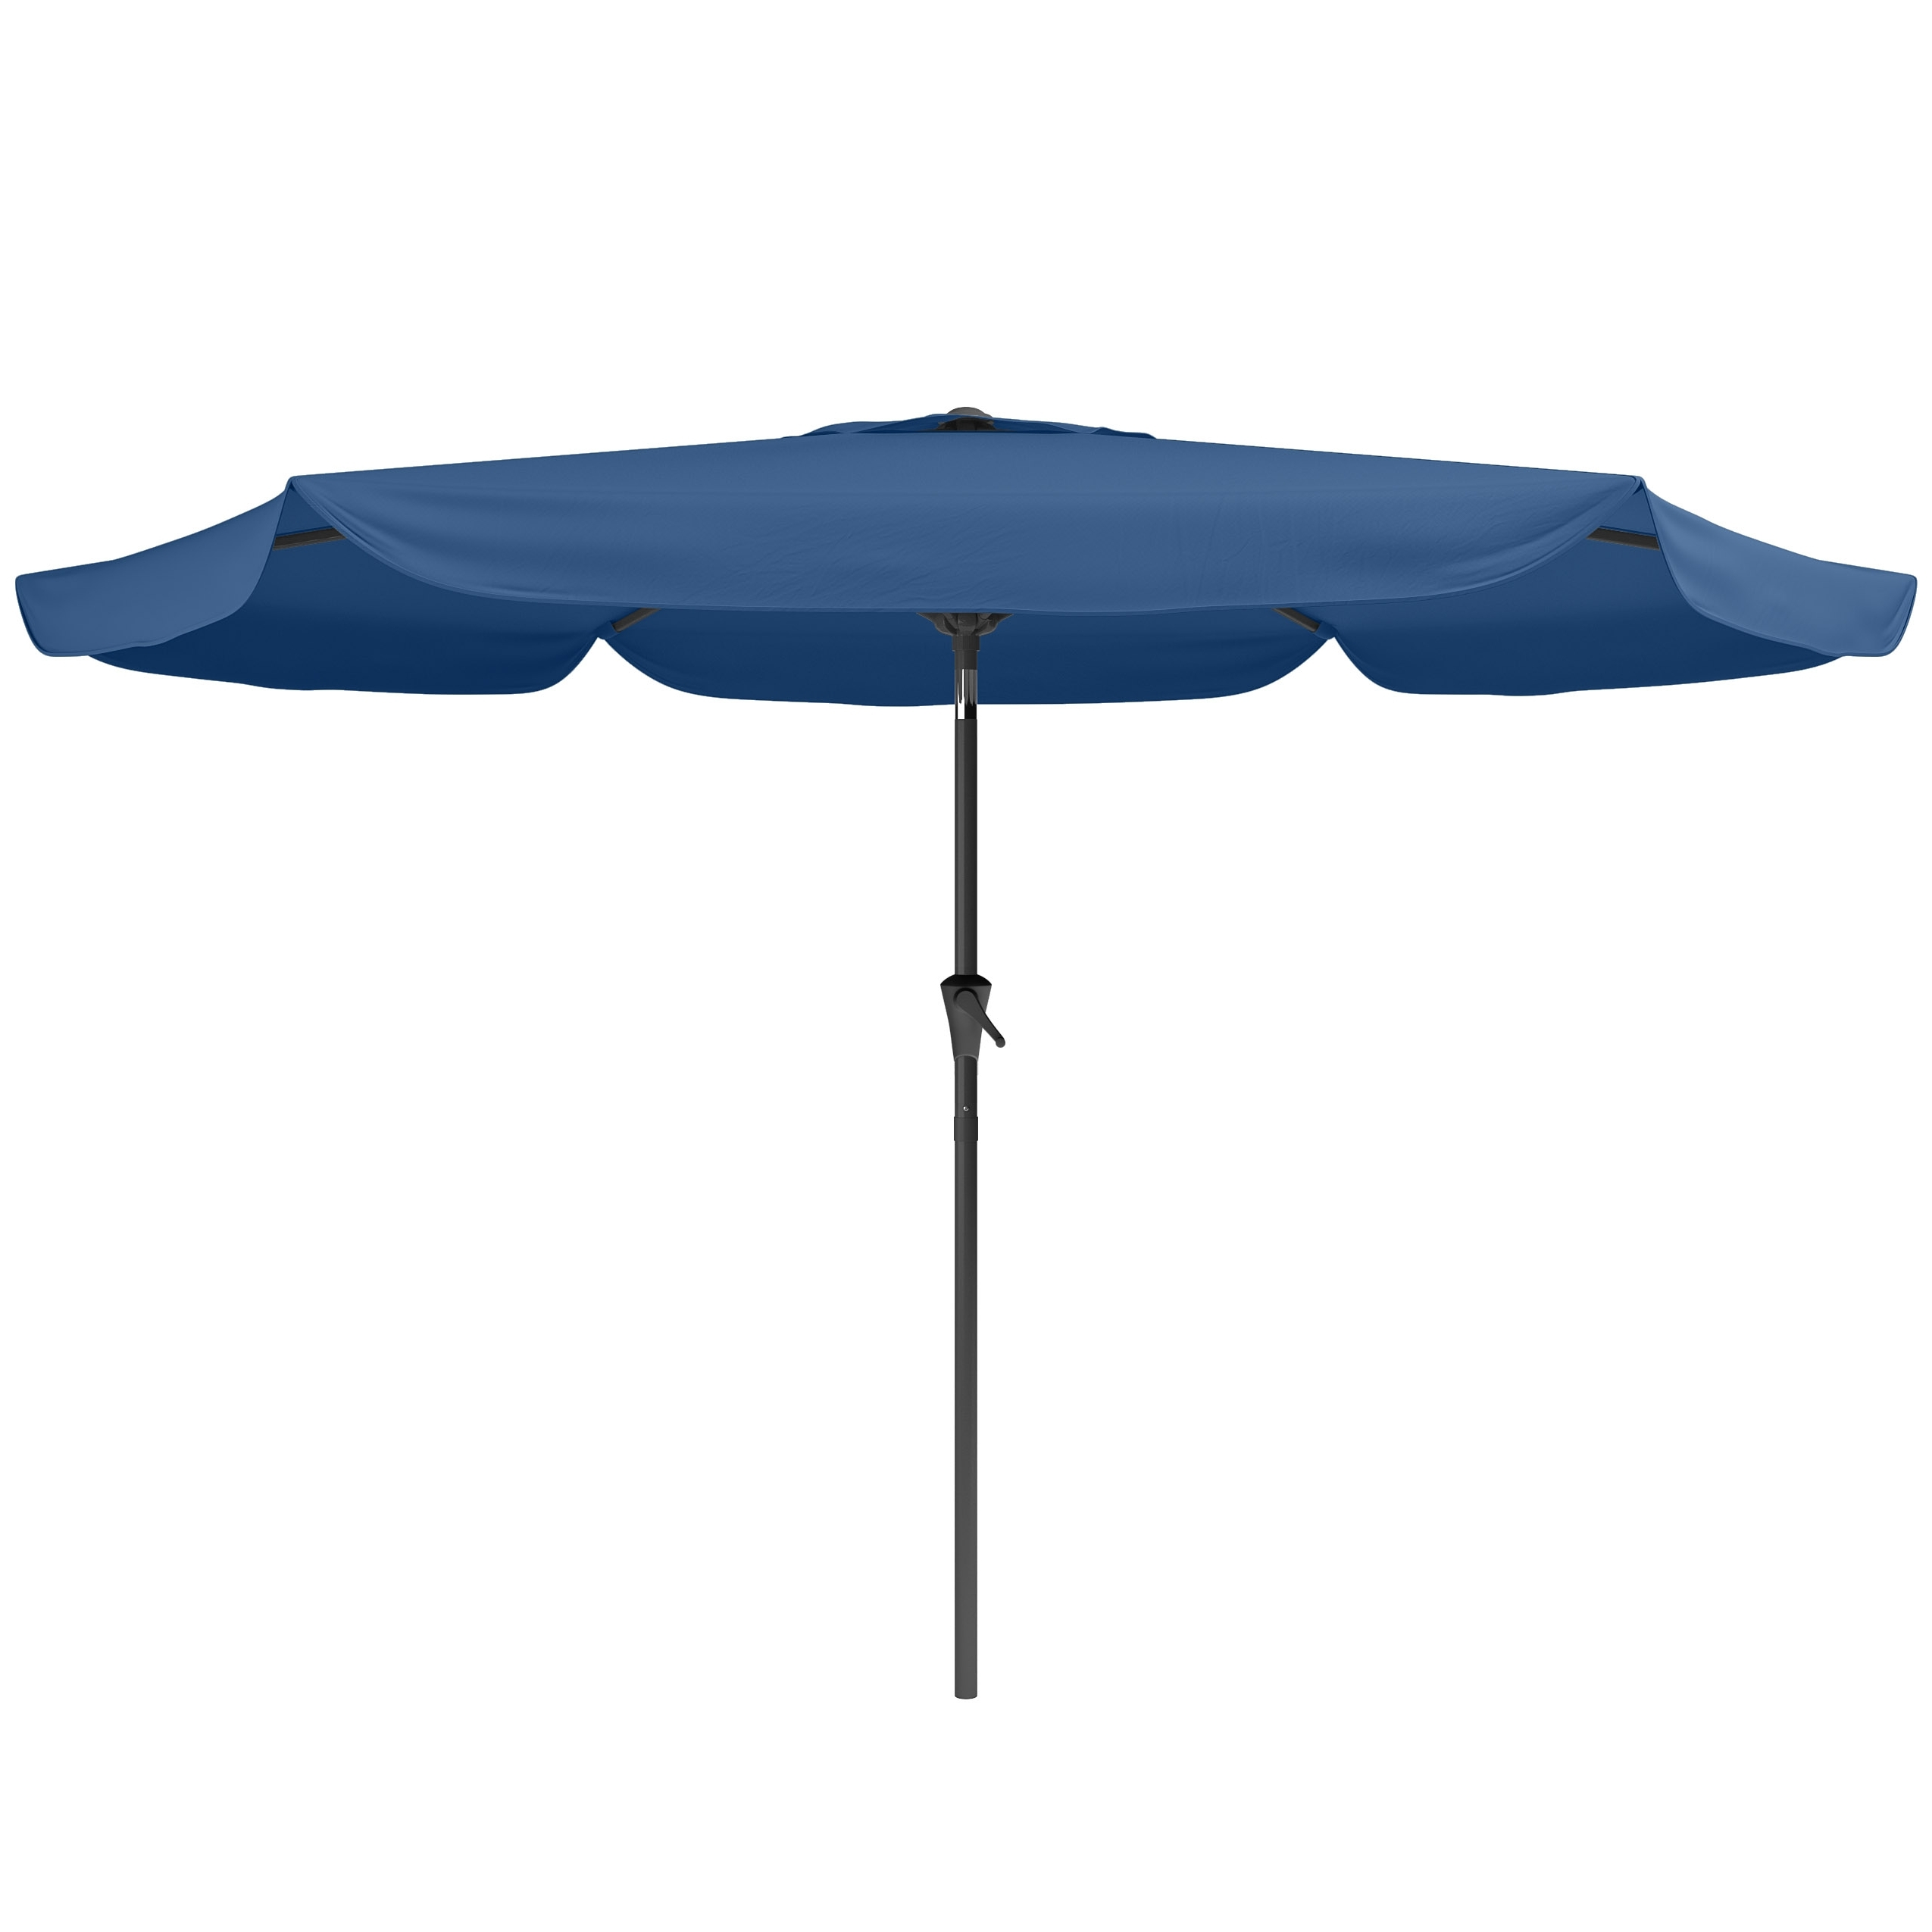 Tilting Patio Umbrellas Intended For Well Liked Tilting Patio Umbrella In Cobalt Blue (View 16 of 20)